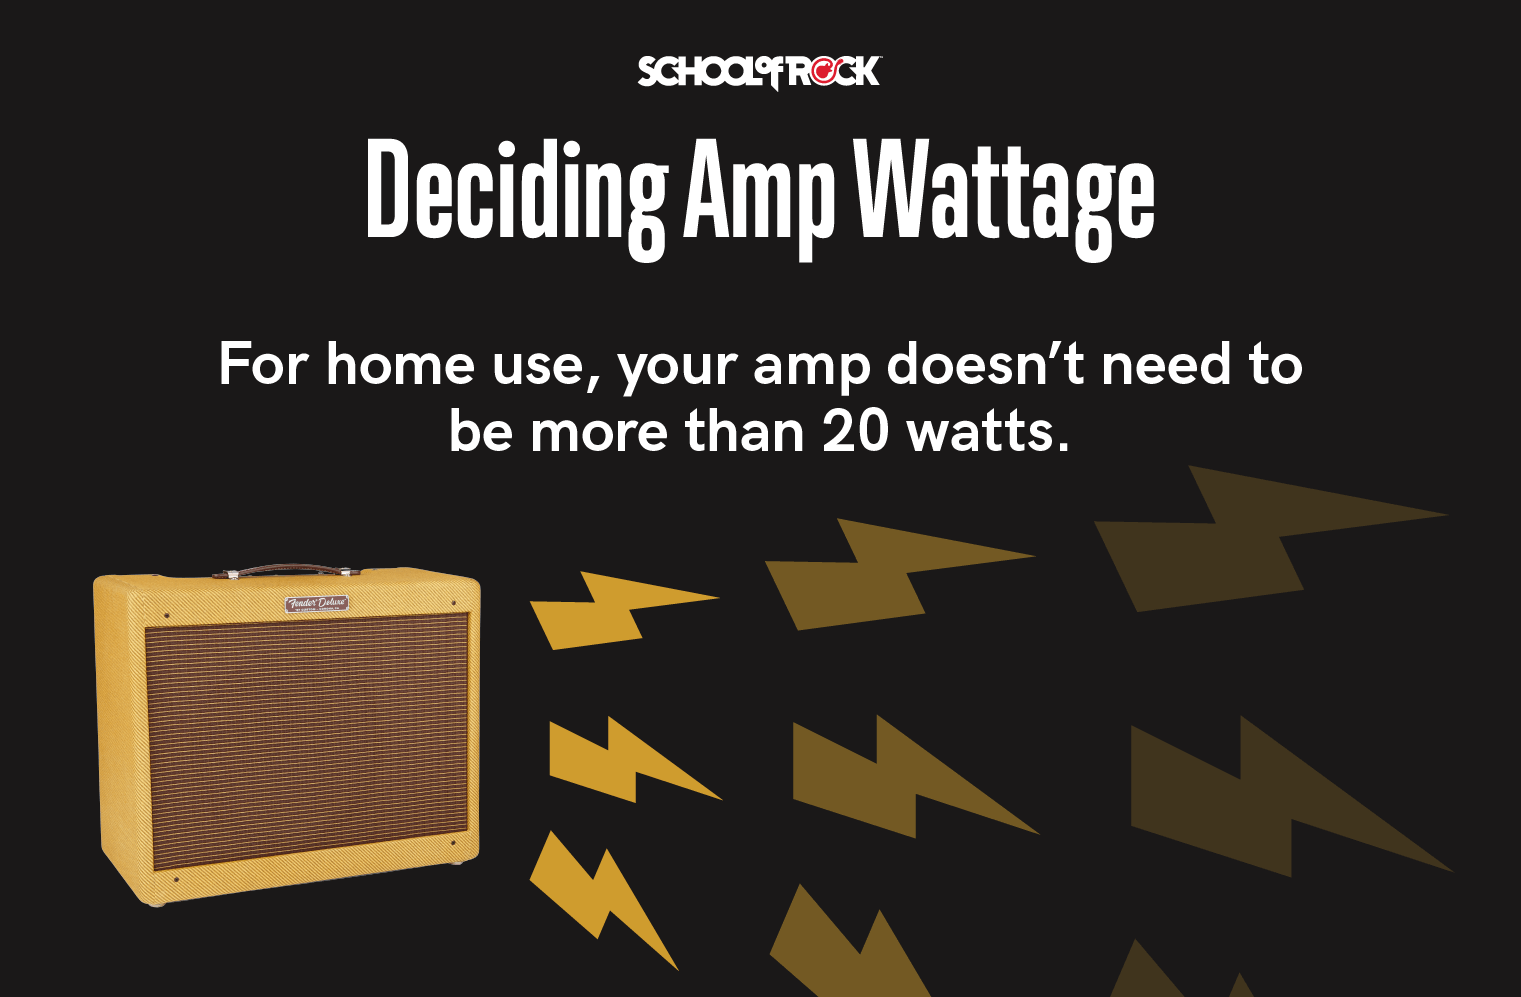 deciding amp wattage to use